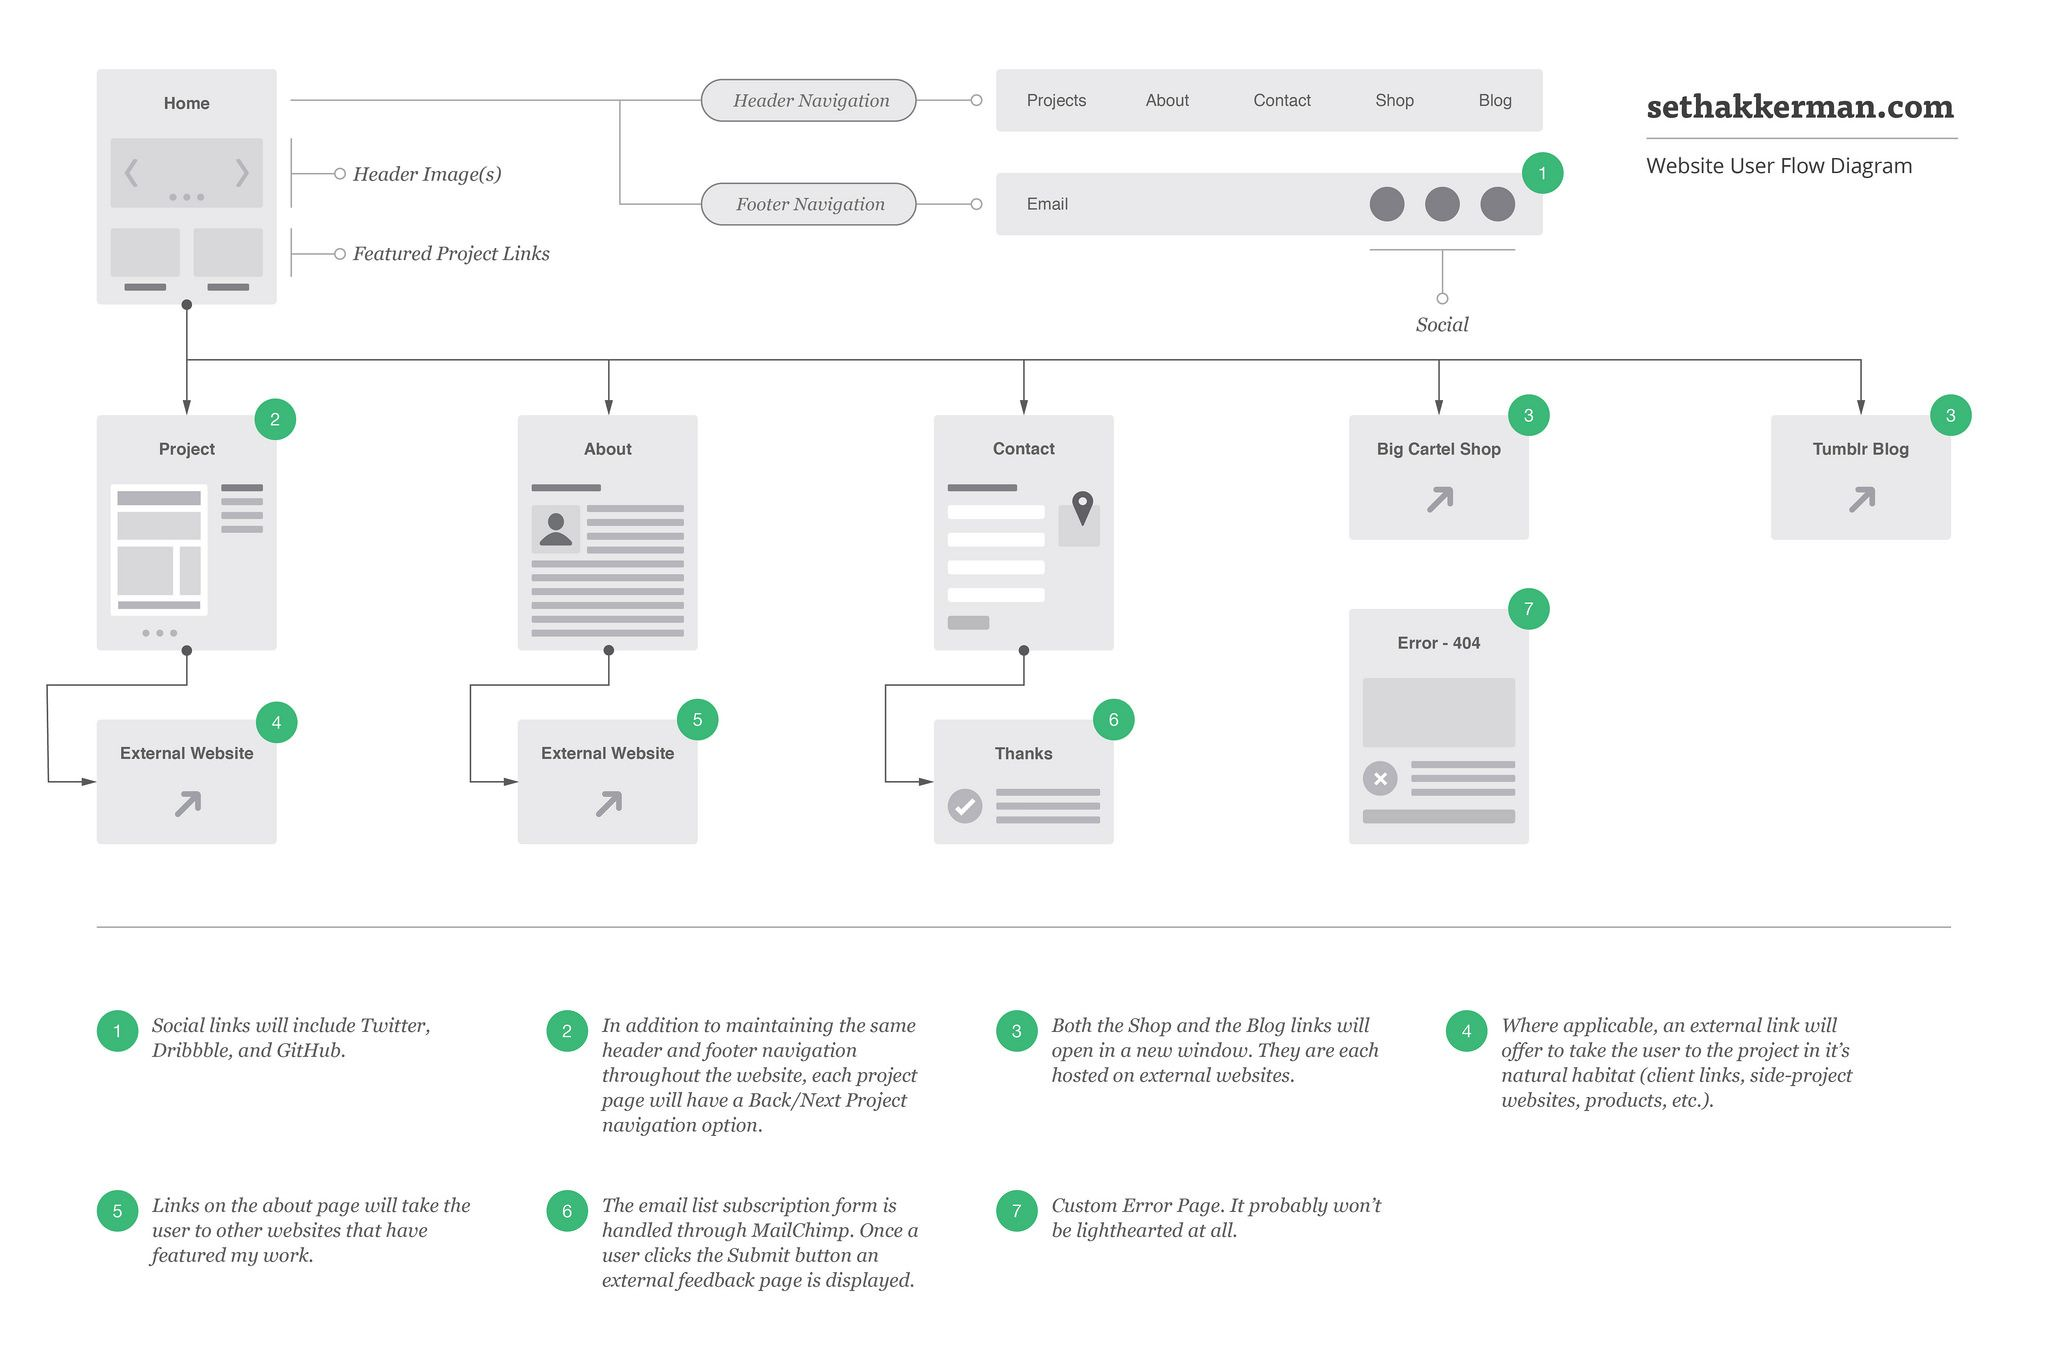 Website User Flow Diagram  U2013 Seth Akkerman  Webdesign